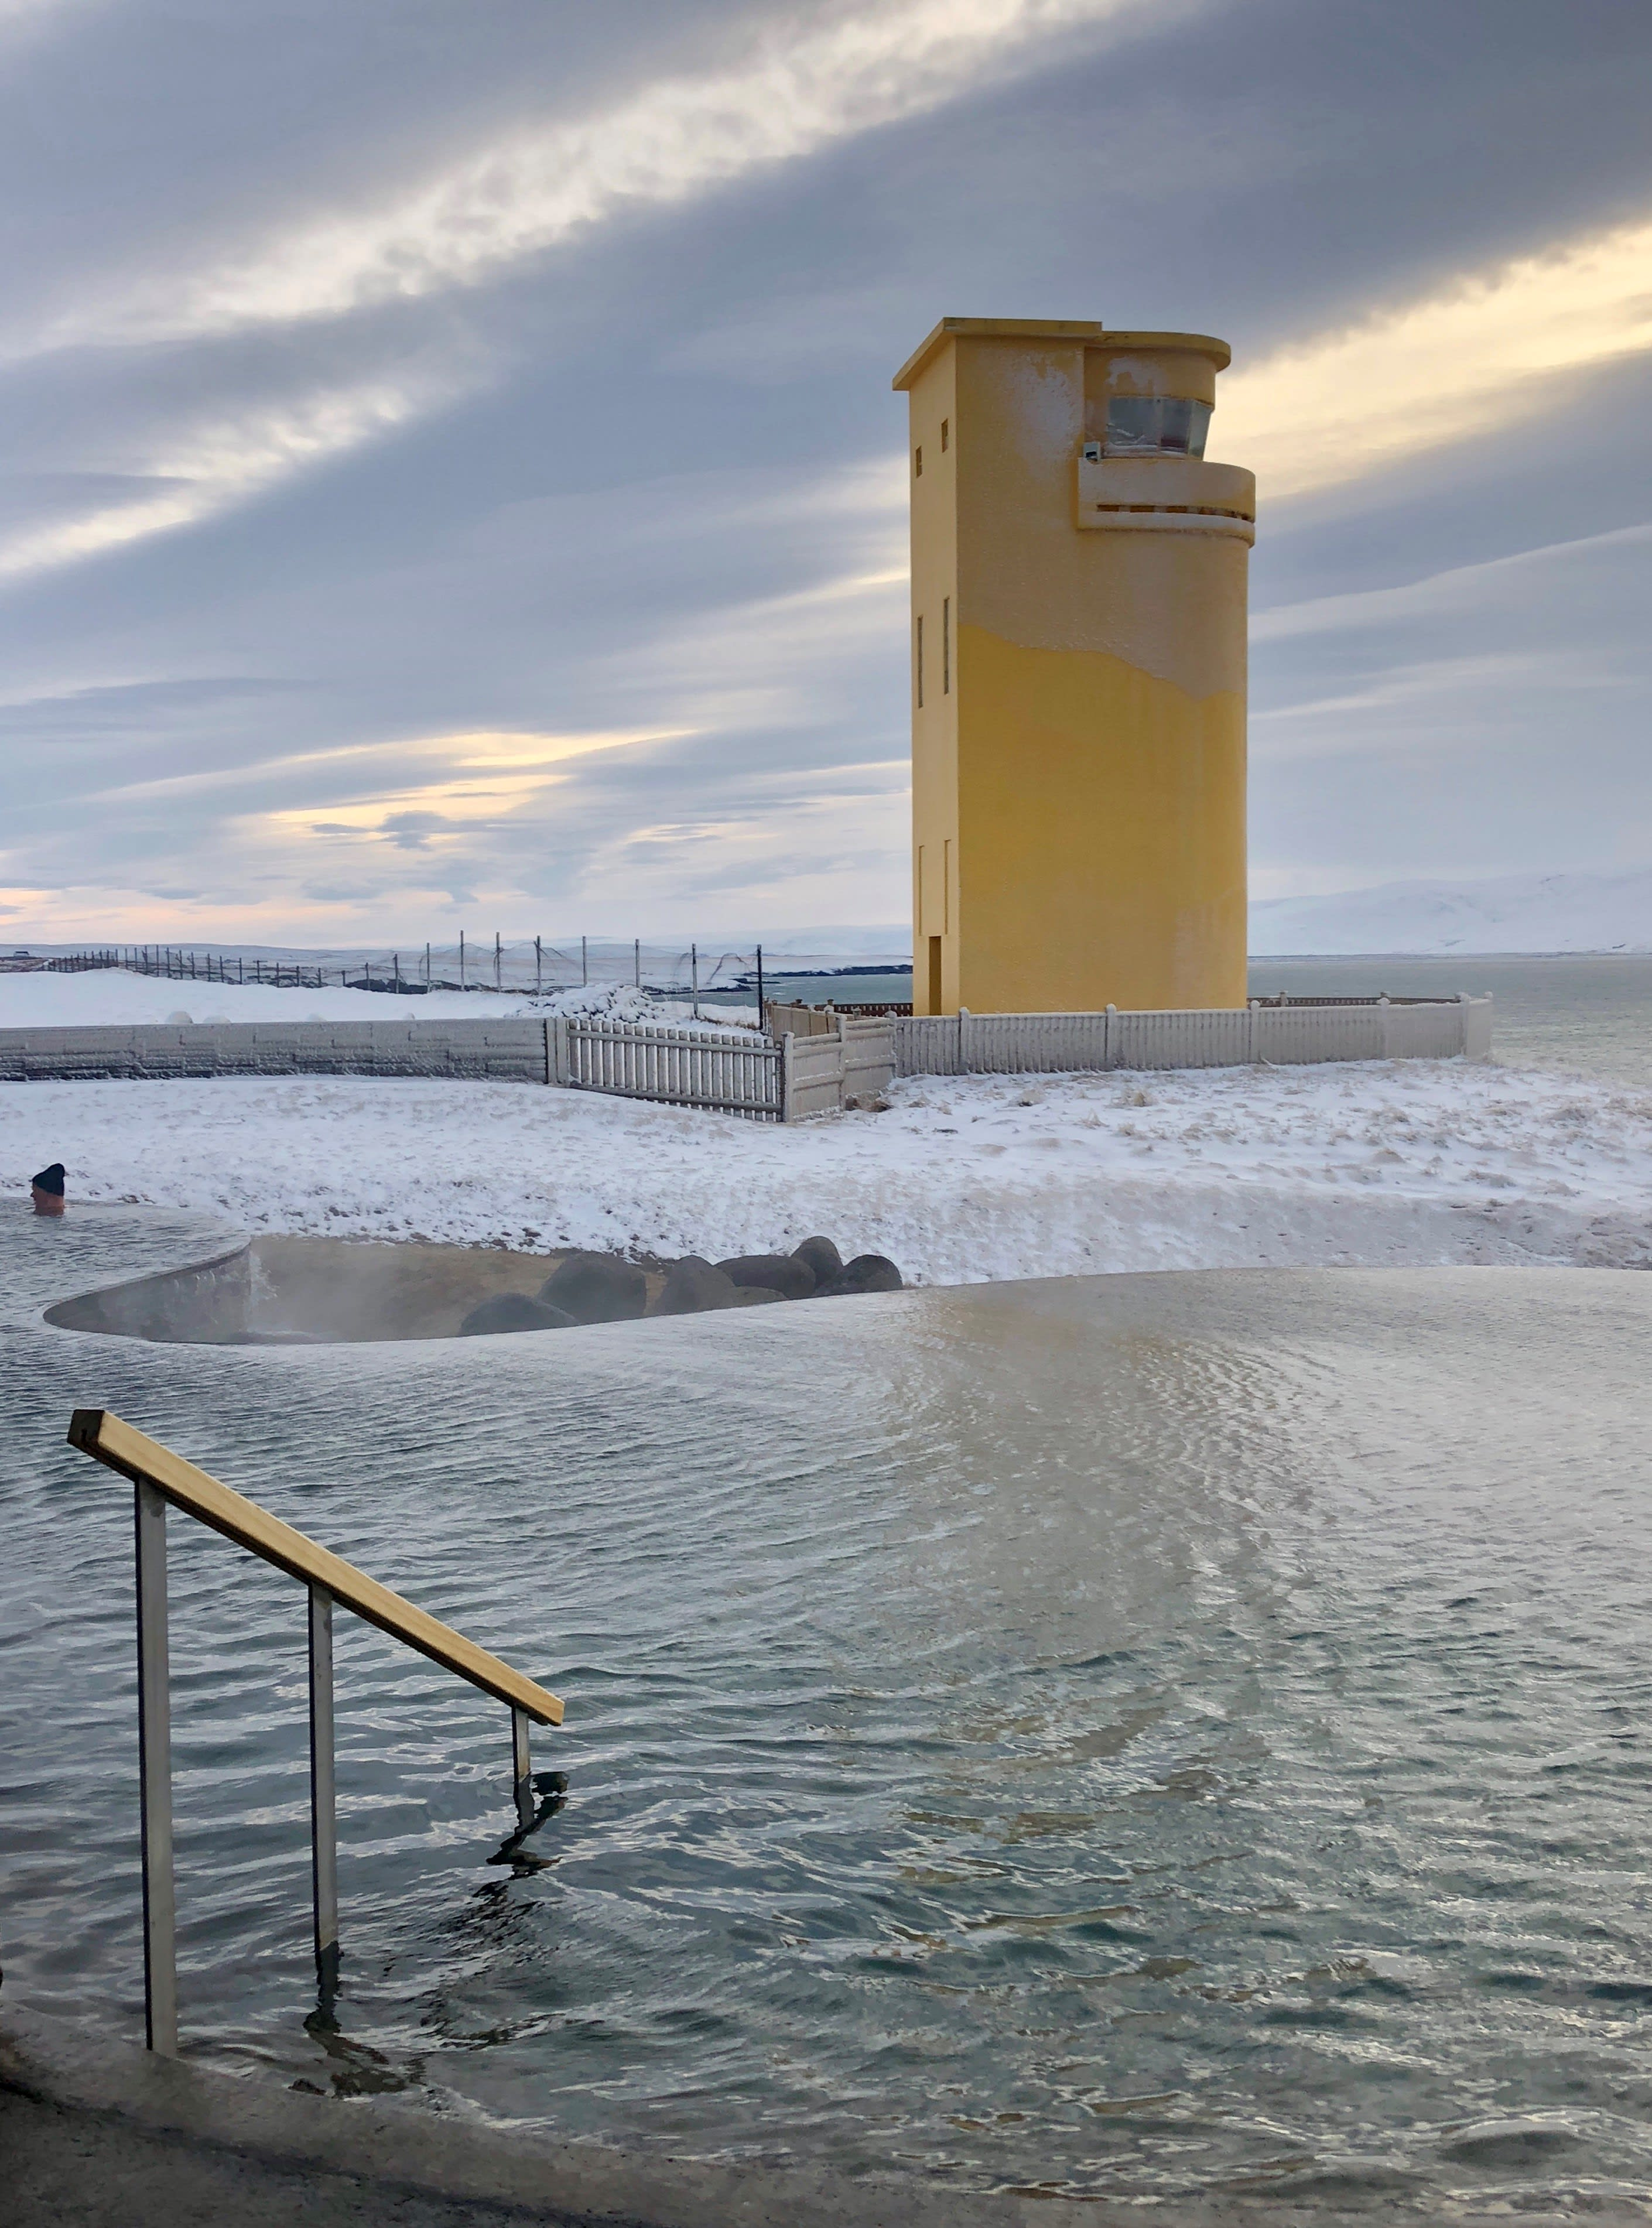 The GeoSea geothermal baths look out on to the sea, where a yellow lighthouse can be seen